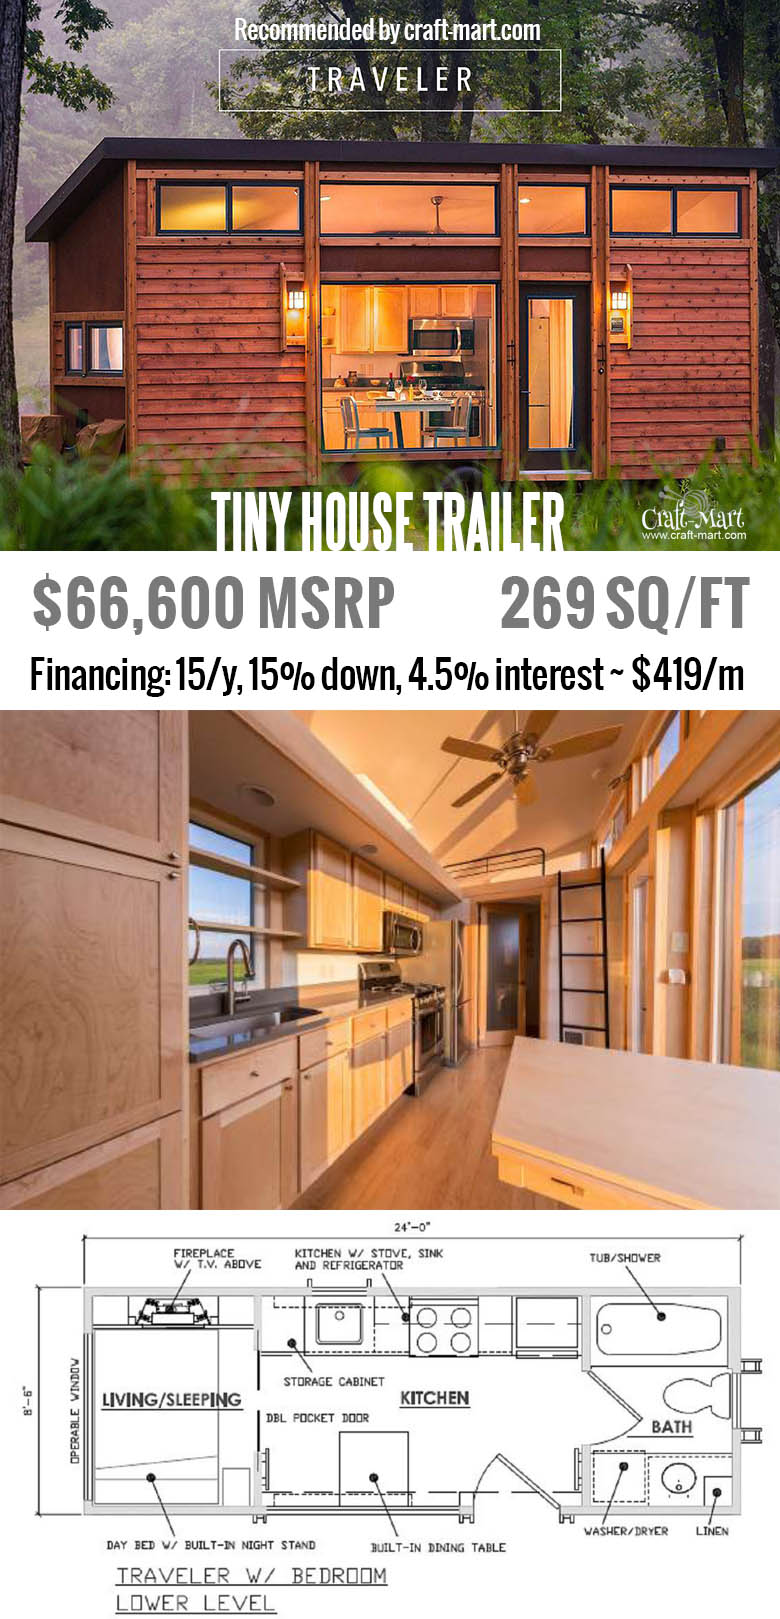 Traveler model has huge windows & modern interior. Do you have a place to put one of these tiny houses? Get one of these for FREE and start earning money from renting it! Or simply buy one of the most beautiful tiny house trailers with easy financing starting from $195/m! #tinyhouse #tinyhouseplans #minimalism